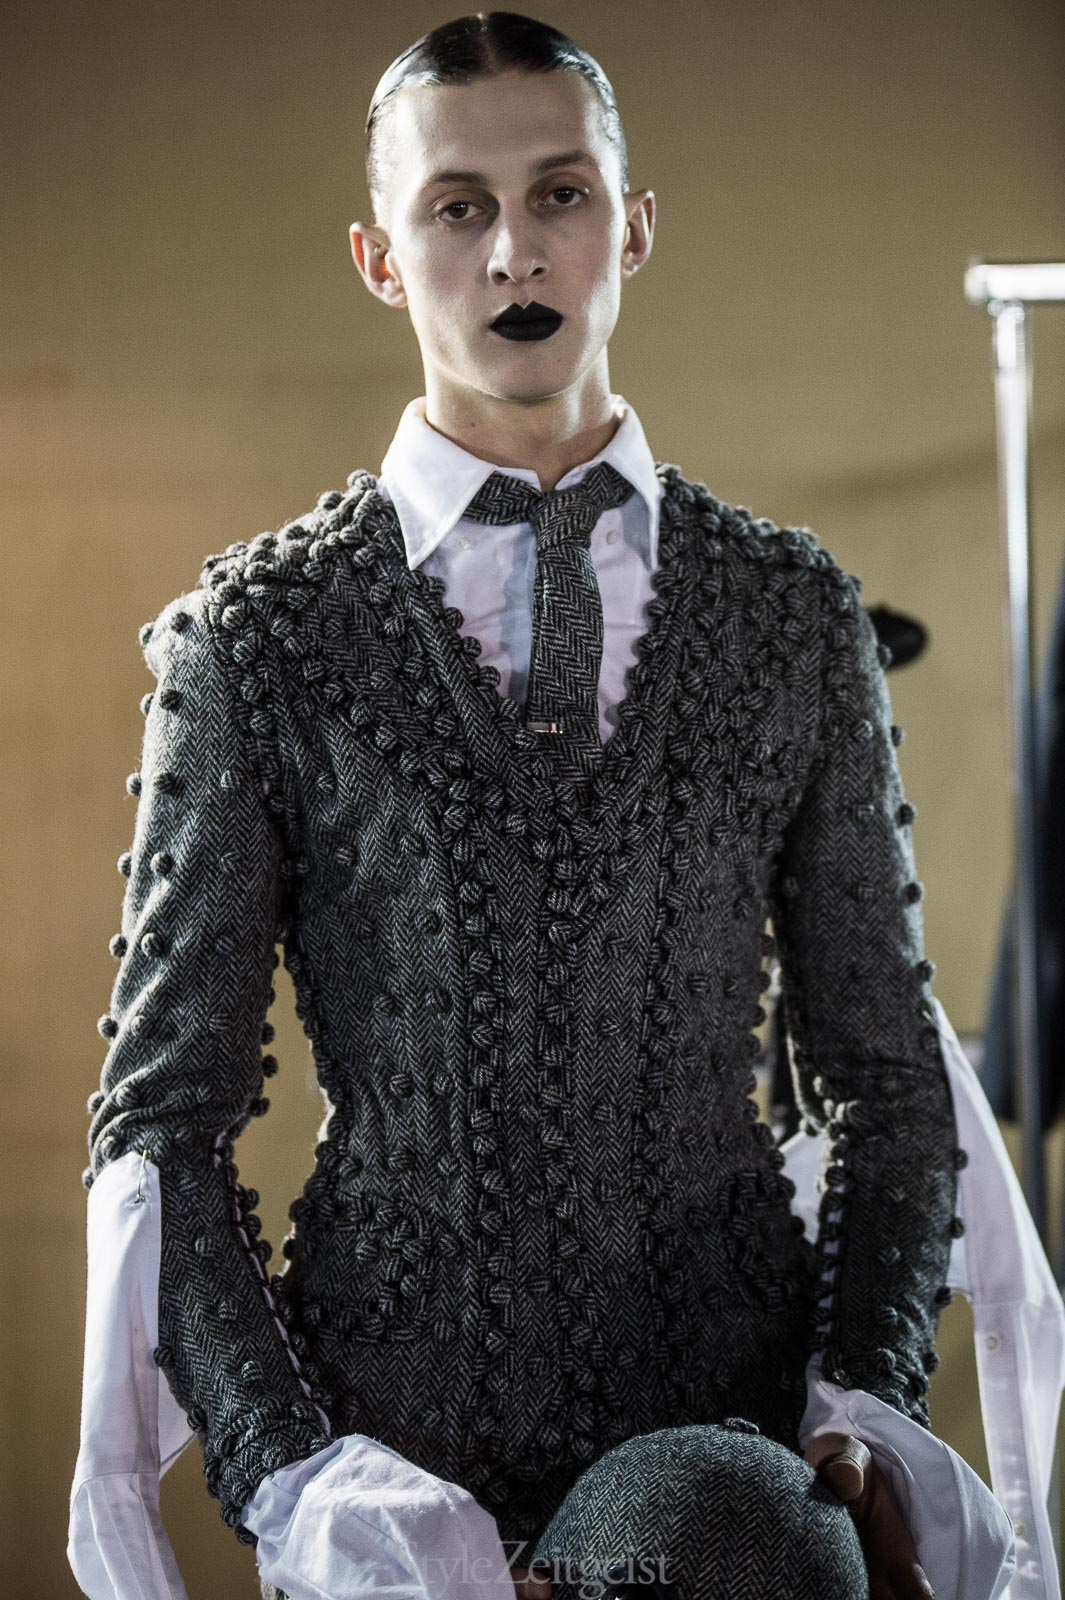 Thom Browne F/W17 Men's - Paris - fashion - Thom Browne PFW Patrick LaDuke Paris MENSWEAR FW17 Fashion StyleZeitgeist Fall Winter 2017